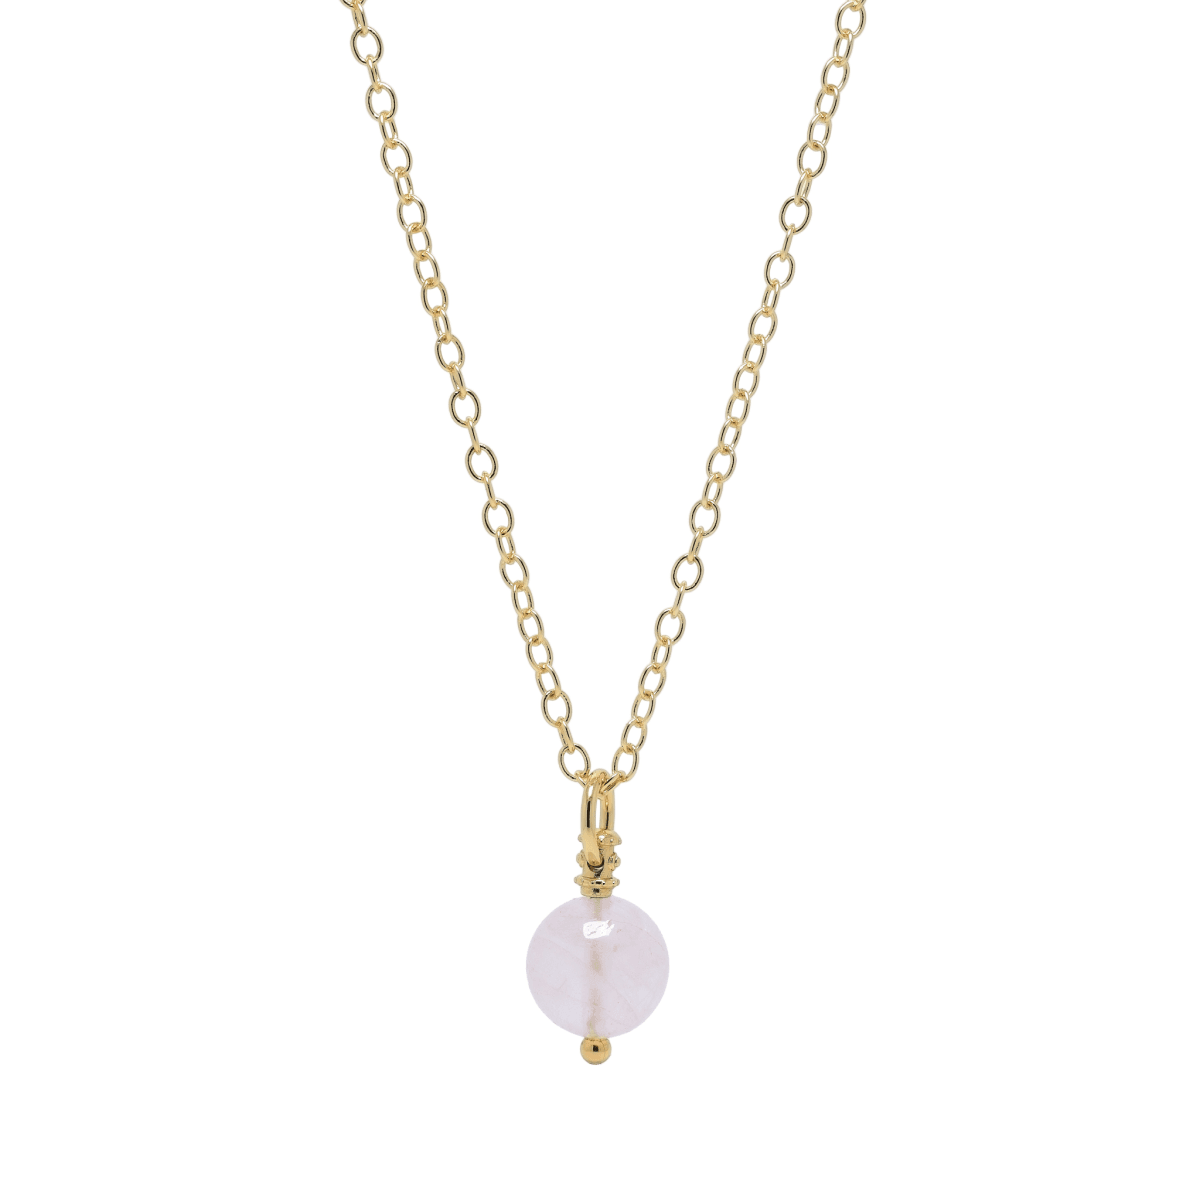 THE OBV NECKLACE GOLD - C.J.ROCKER